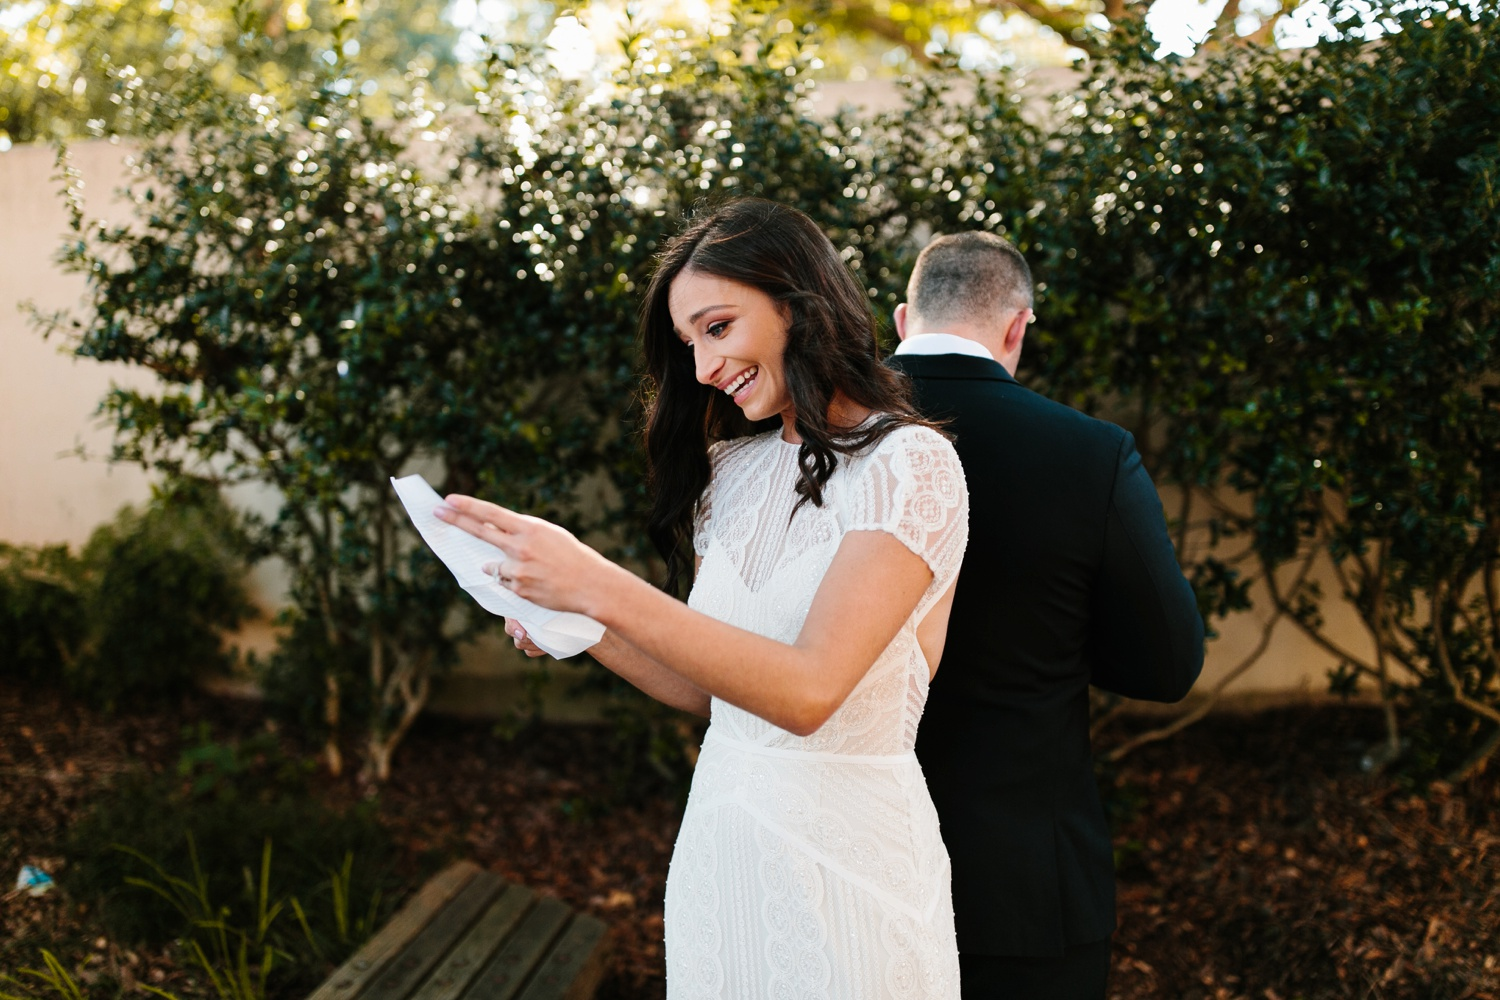 Kadee + Tyler | a raw, emotional wedding at the Filter Building on White Rock Lake in Dallas, TX by North Texas Wedding Photographer, Rachel Meagan Photography 047